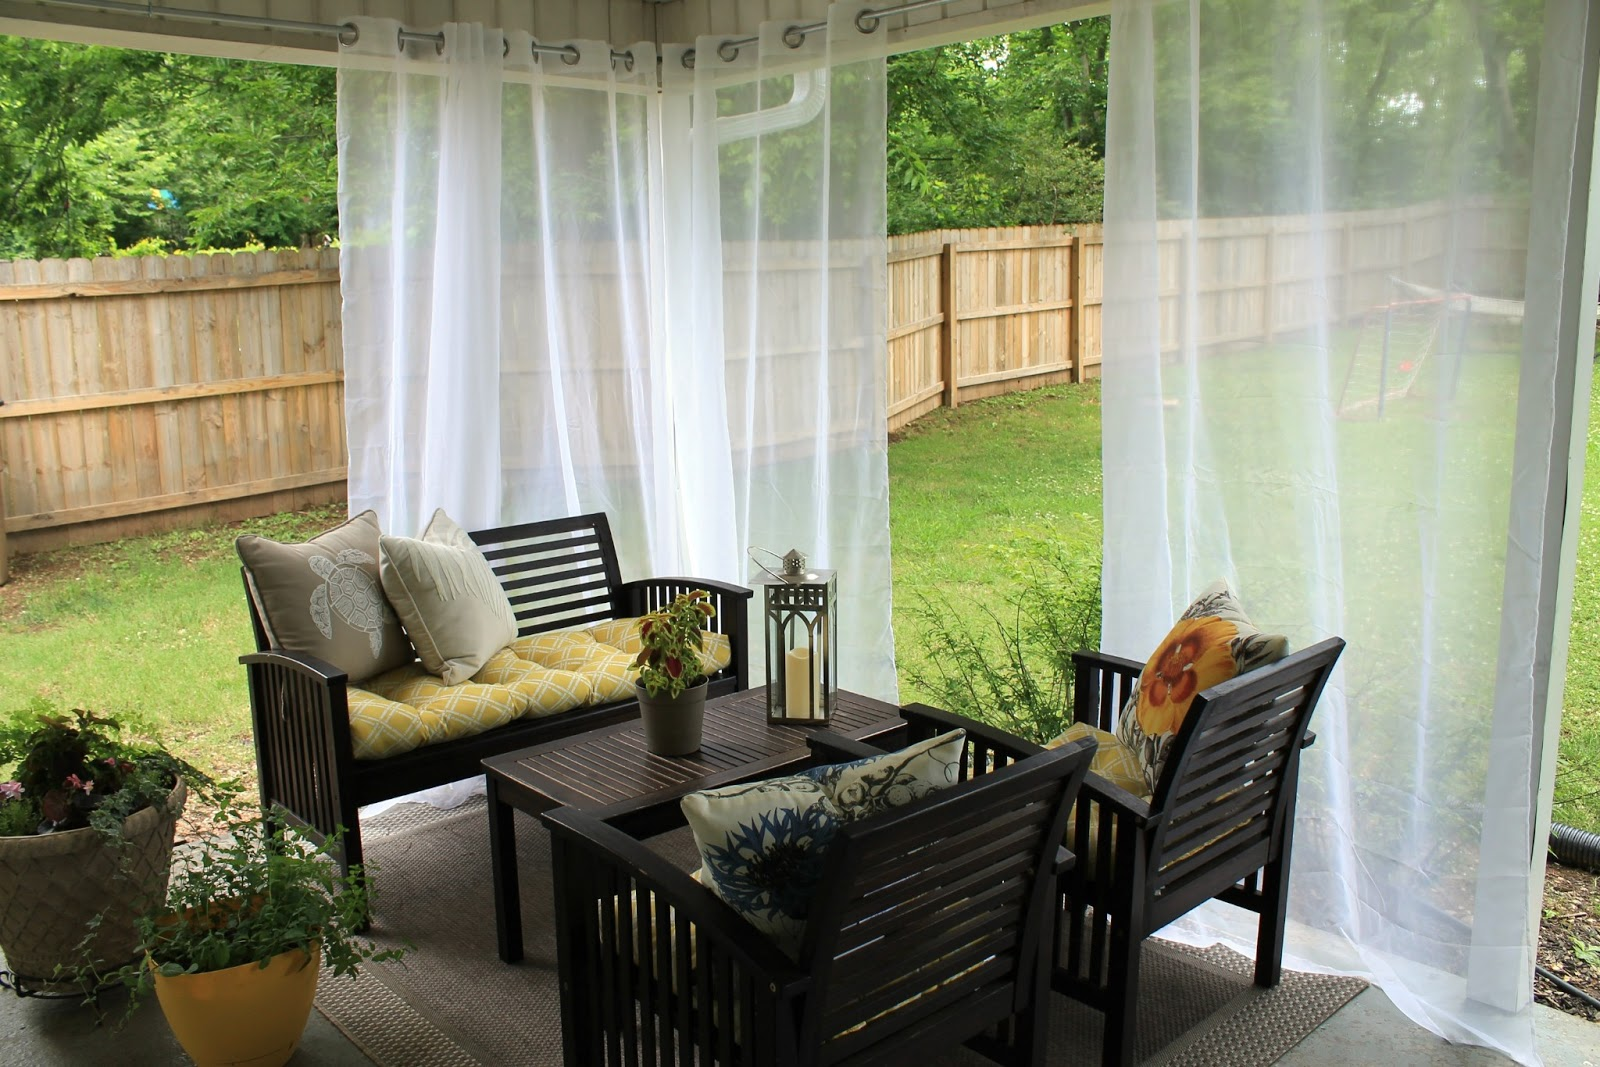 Diy outdoor curtain rods - Diy Outdoor Curtain Rods